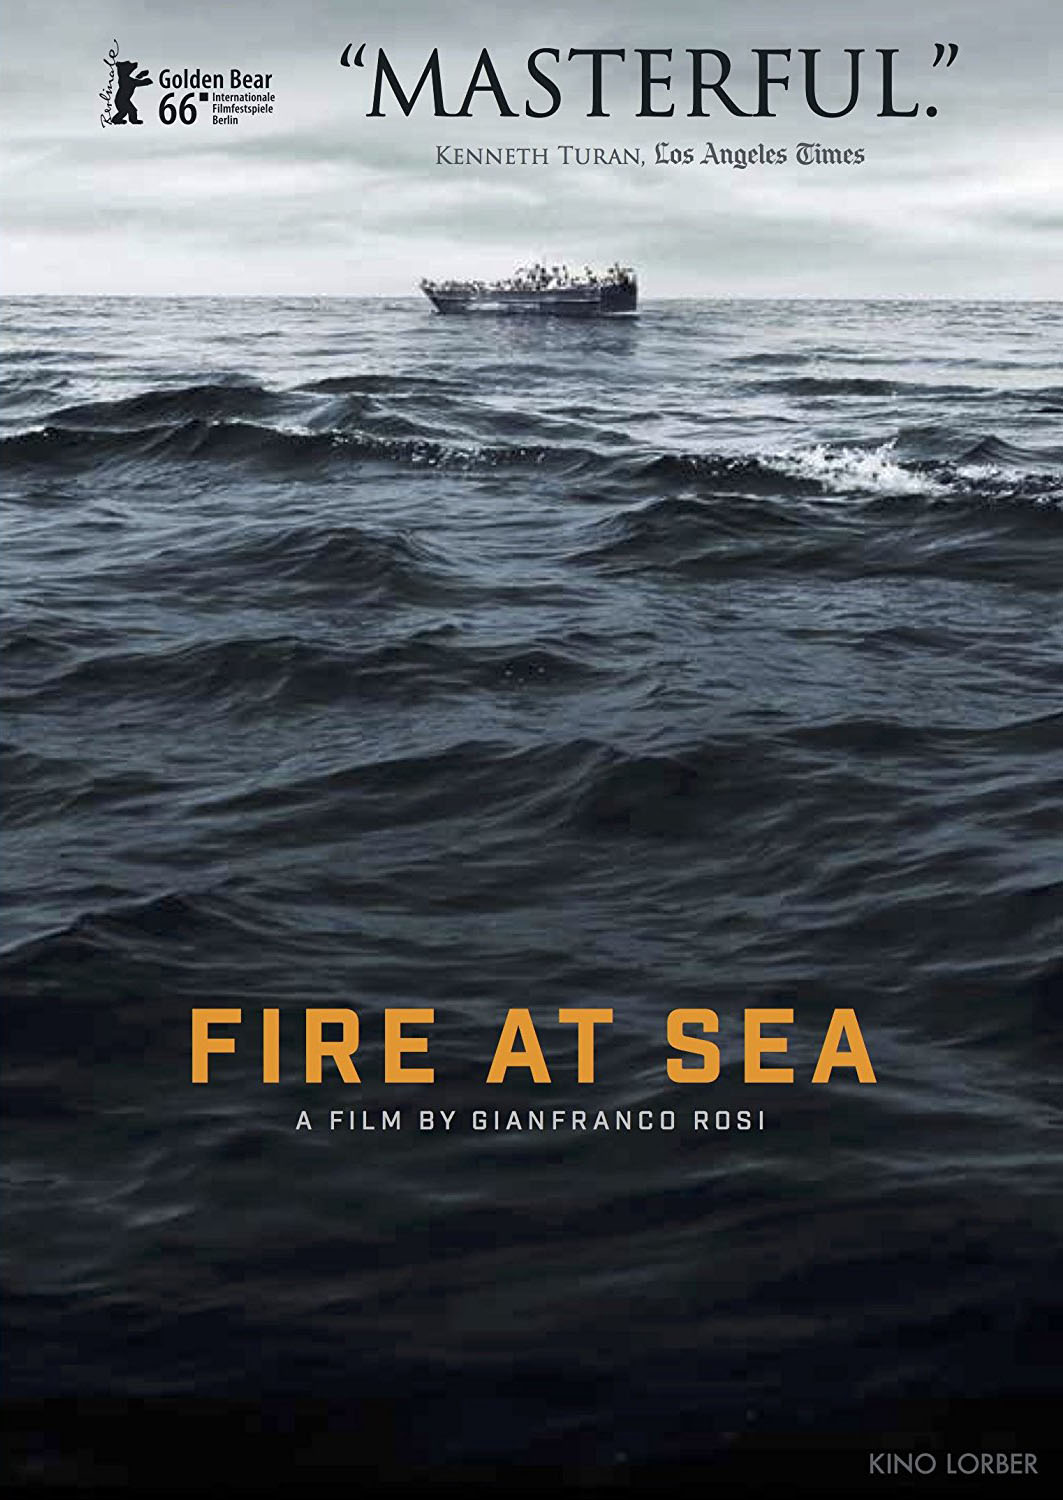 Fire at sea / Director, cinematography and sound: Gianfranco Rosi.